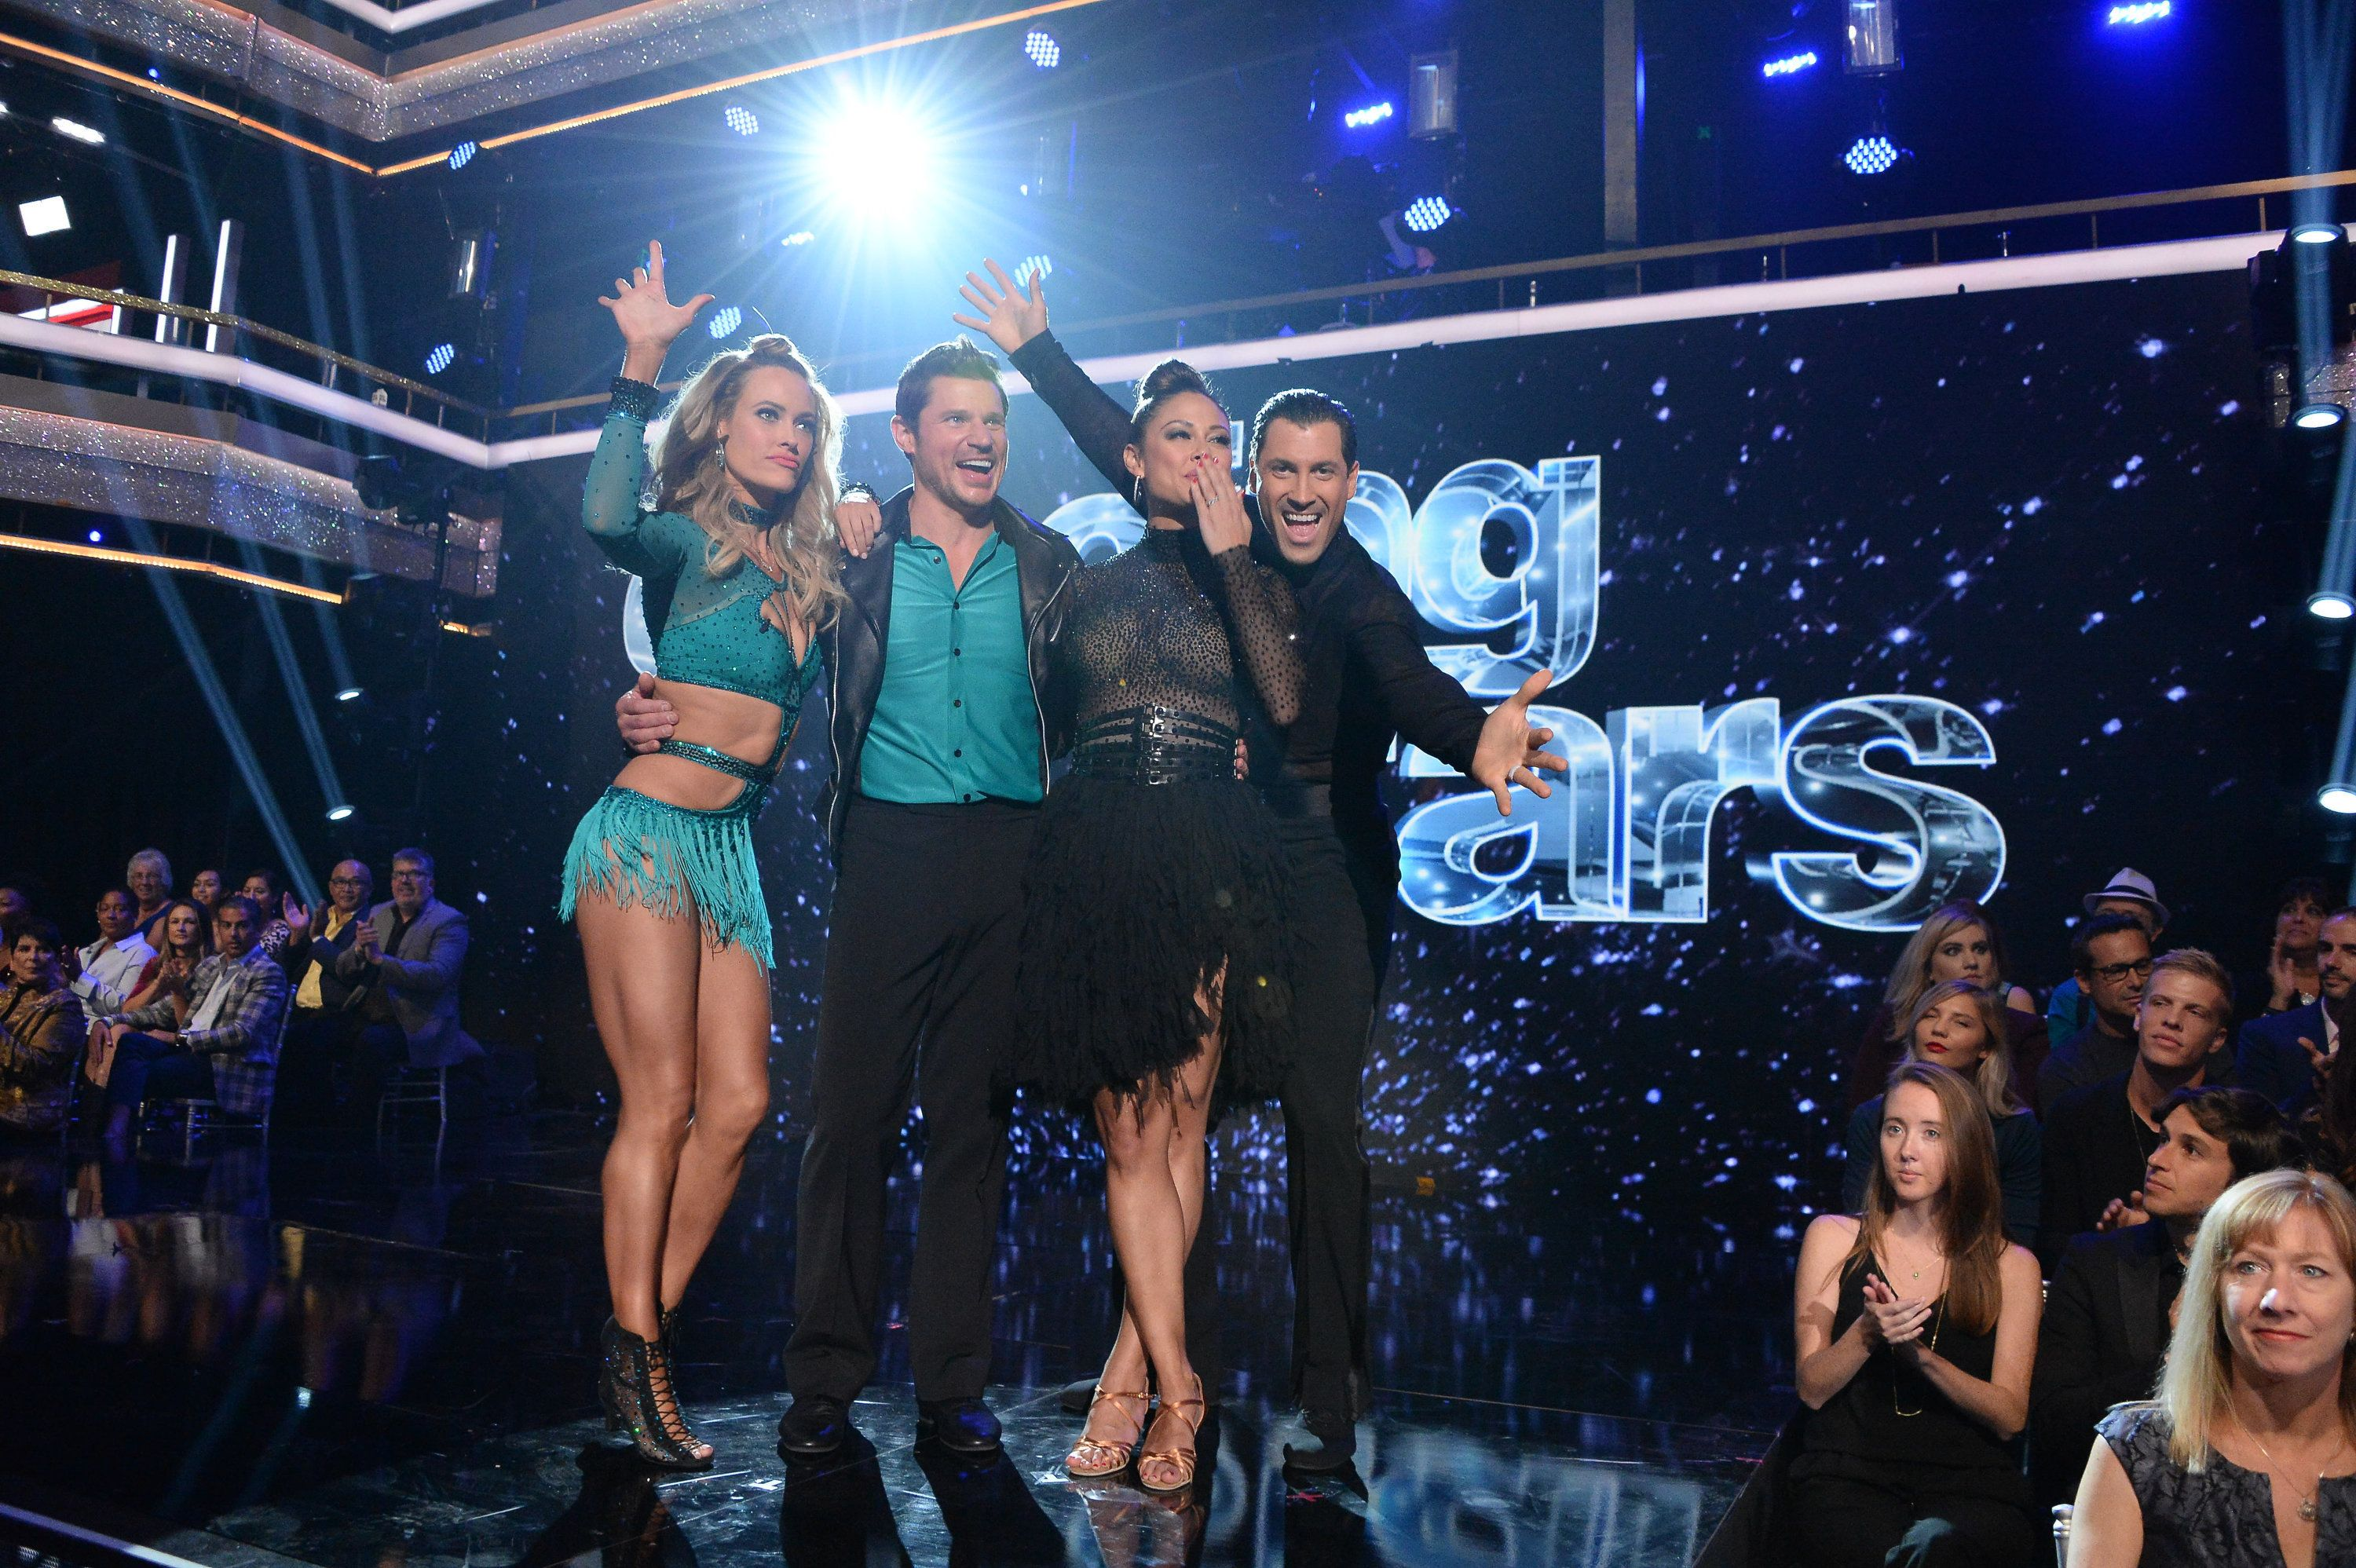 DANCING WITH THE STARS - 'Episode 2501' - 'Dancing with the Stars' is back with a new, dynamic cast of celebrities who are ready to hit the ballroom floor and celebrate the show's landmark 25th season. The competition begins with the two-hour season premiere, live, MONDAY, SEPTEMBER 18 (8:00-10:01 p.m. EDT), on The ABC Television Network. (Eric McCandless via Getty Images) PETA MURGATROYD, NICK LACHEY, VANESSA LACHEY, MAKSIM CHMERKOVSKIY